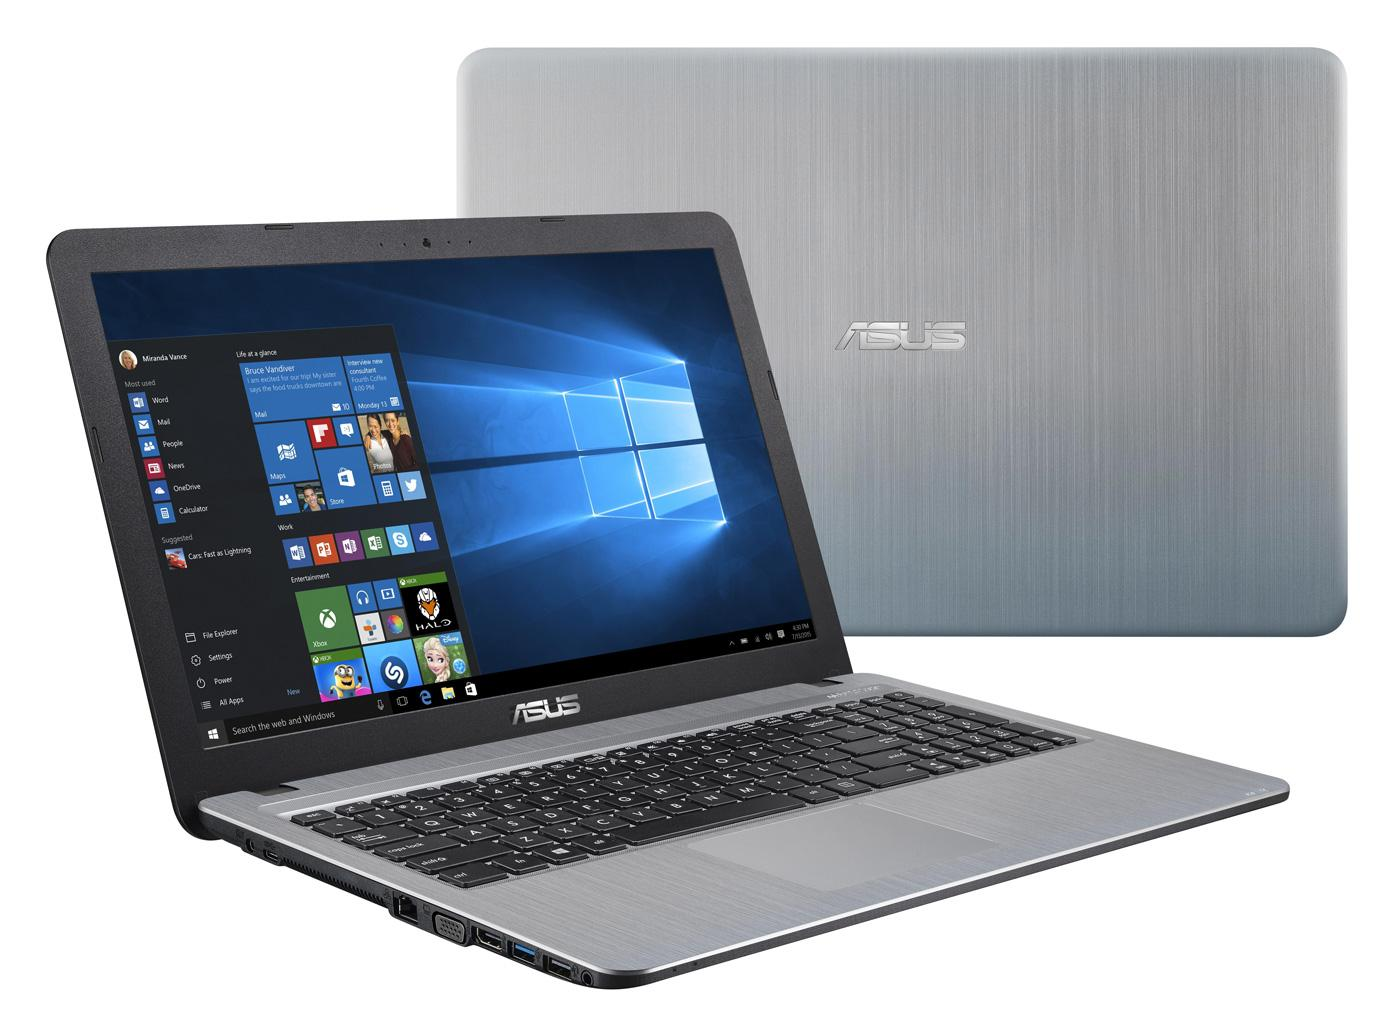 Asus R541UJ-GO603T, PC portable 15 pouces i5 Kaby SSD+HDD 920M à 760€